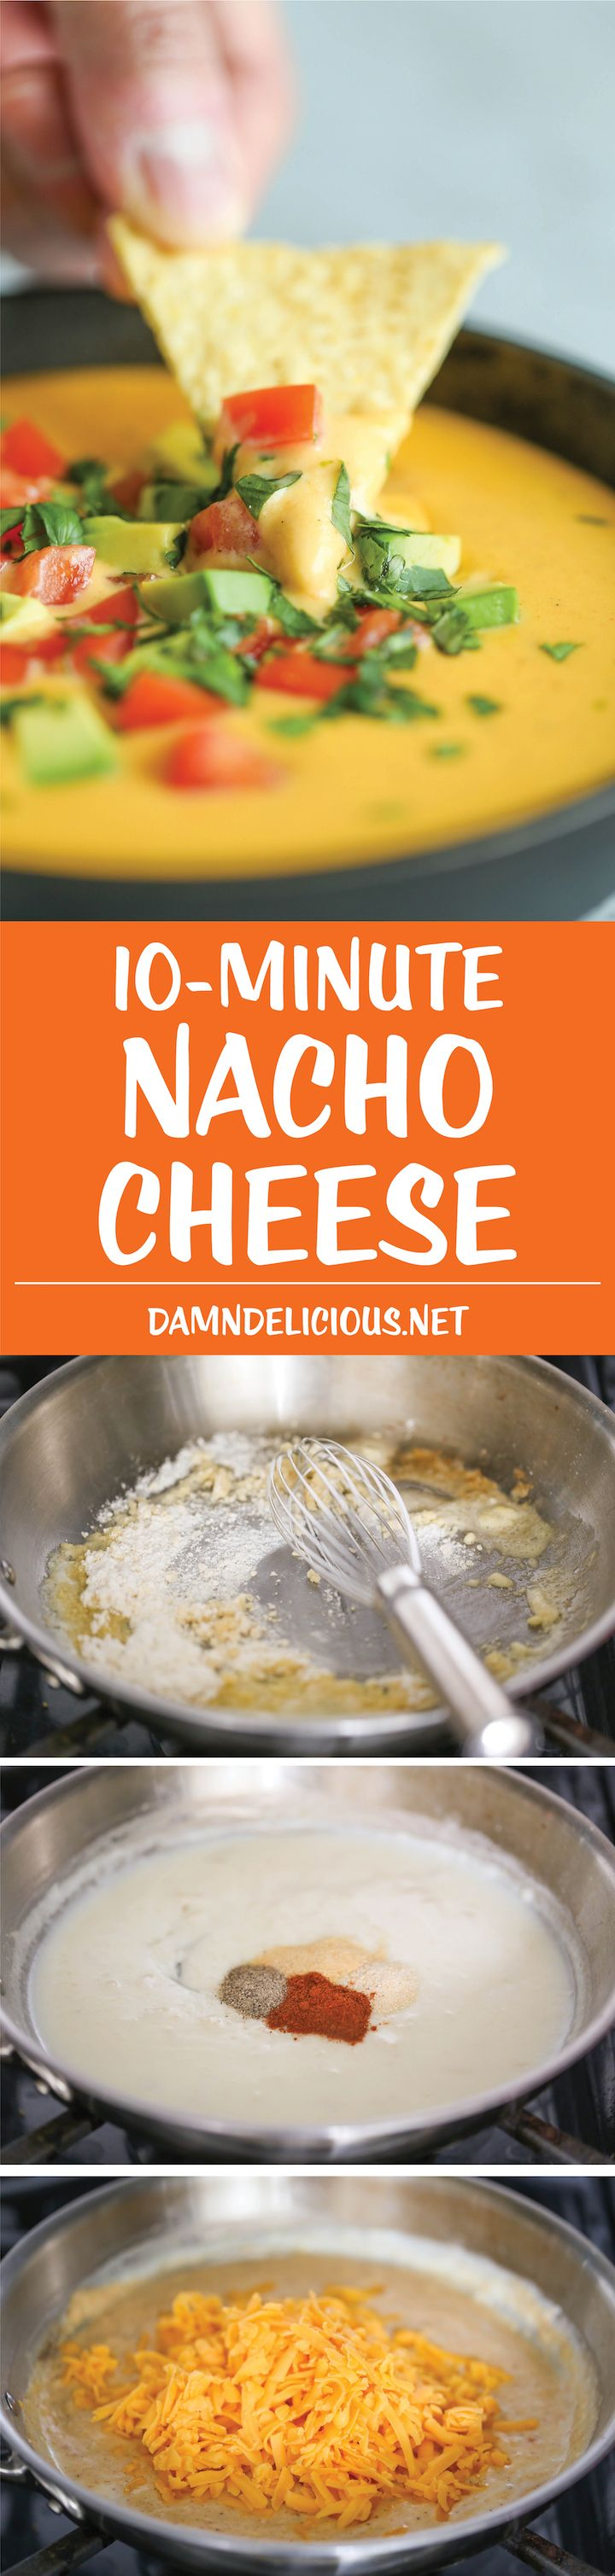 10 Minute Nacho Cheese - Super easy and completely made from scratch (no Velveeta)! It's cheesy, sharp, smoky, unbelievably velvety and just SO GOOD!